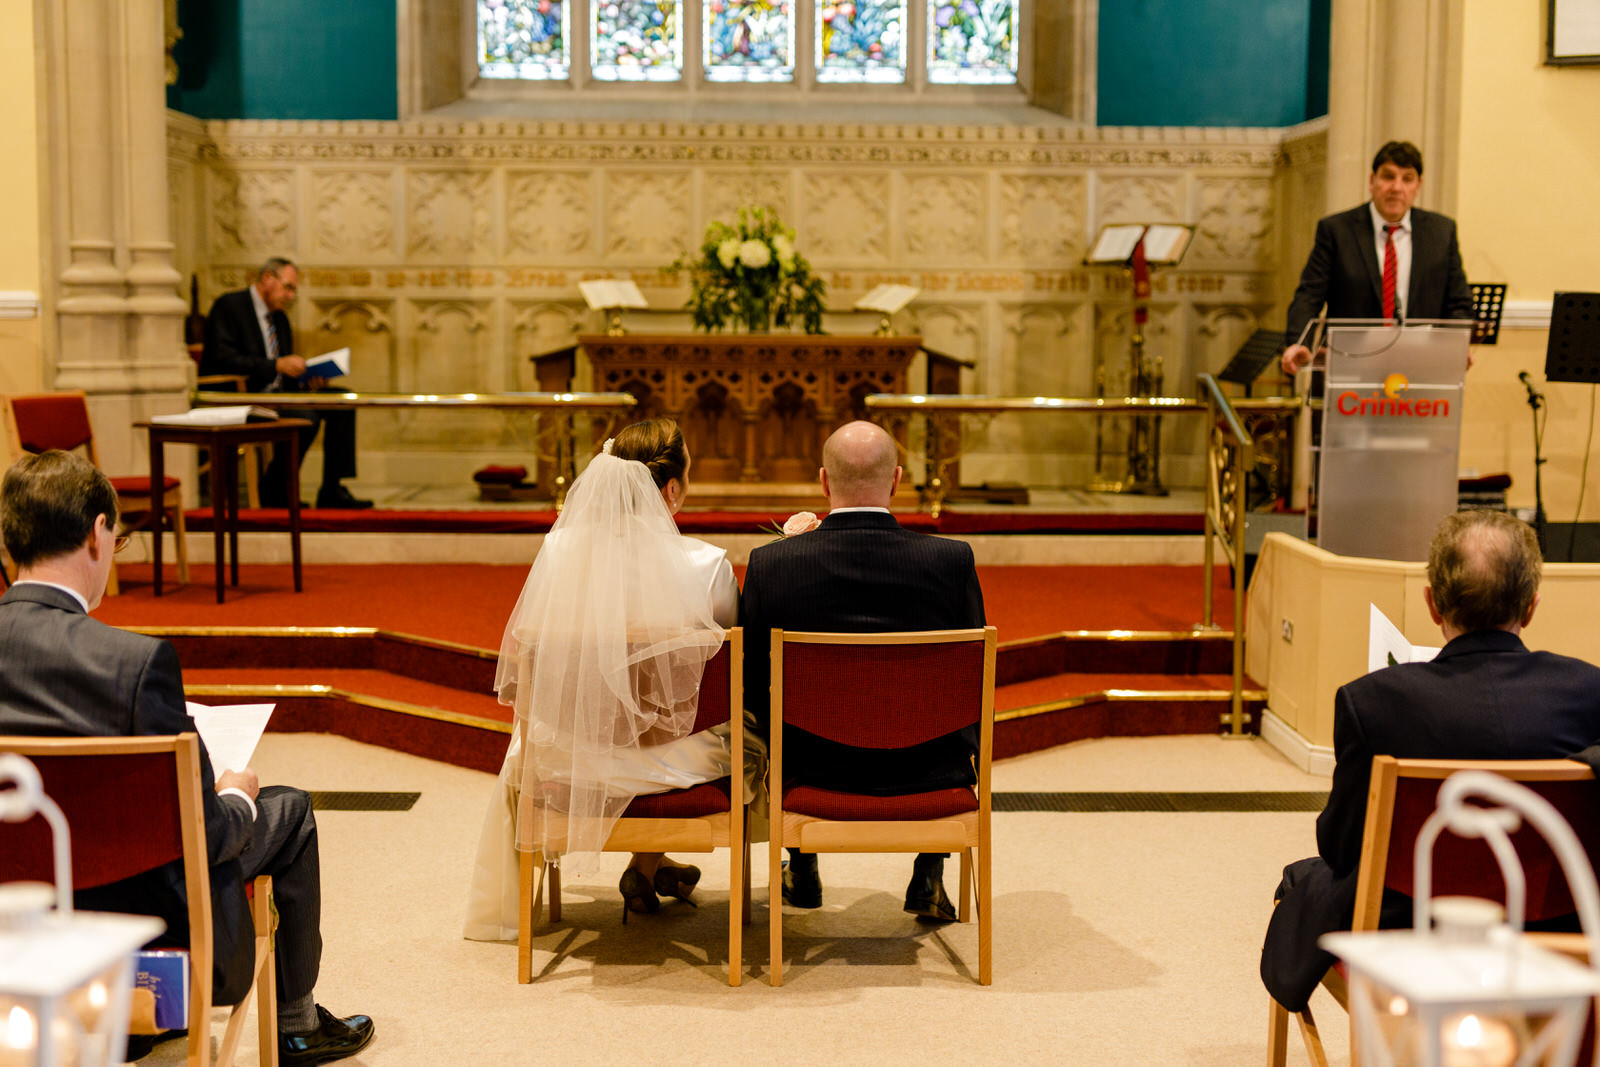 Roger-kenny-wedding-photographer-wicklow-glenview_035.jpg